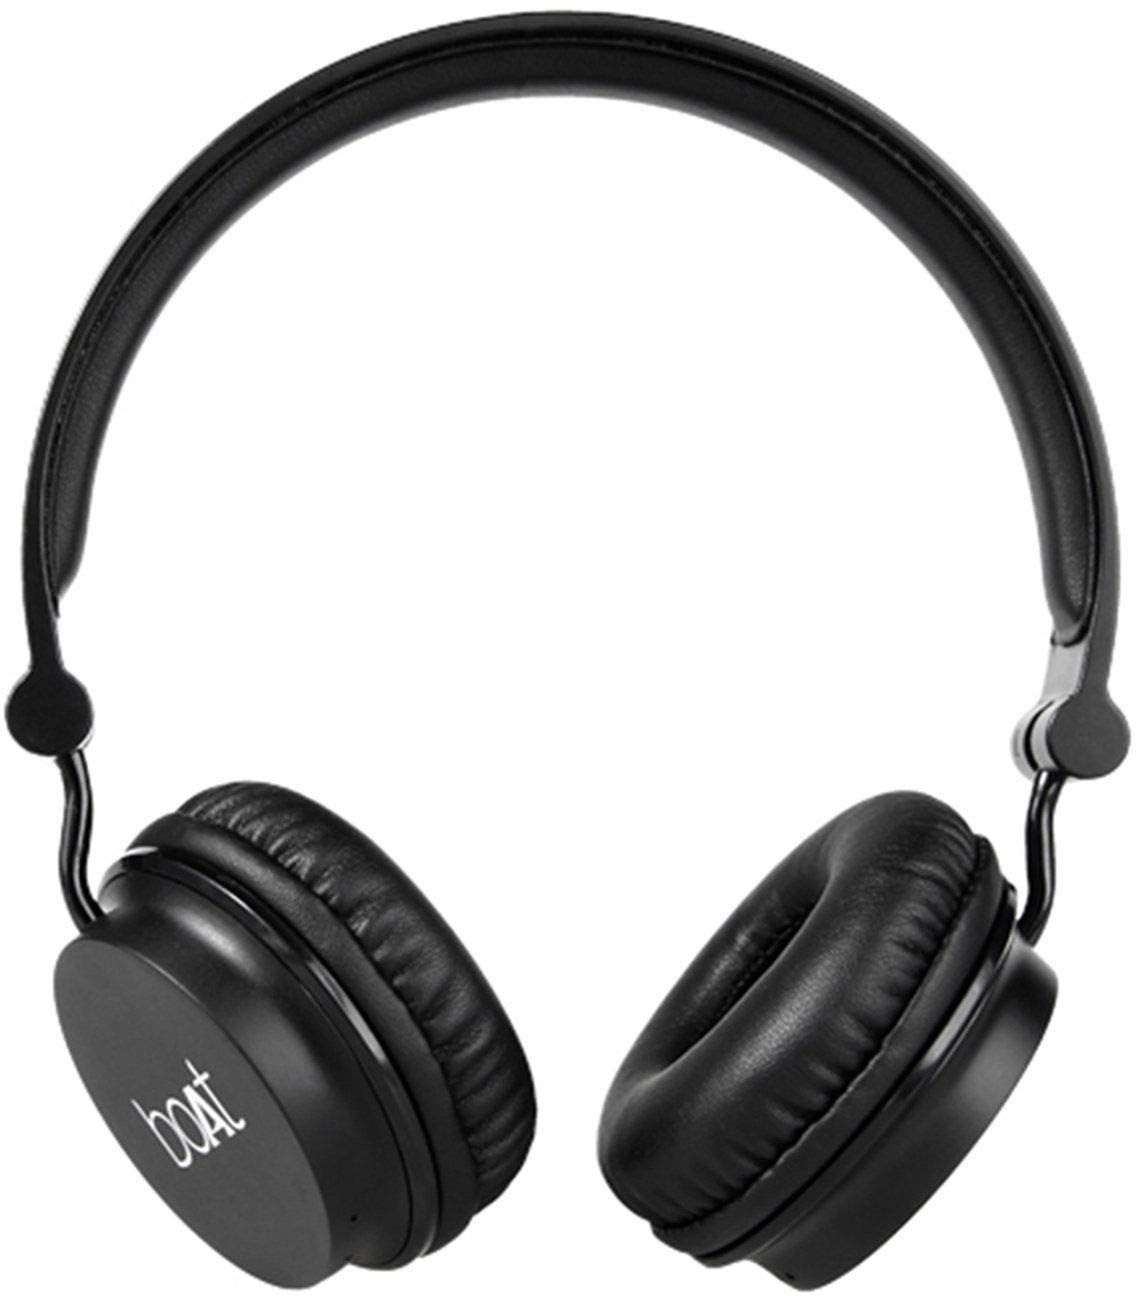 40 Millimeter Drivers Hd Clarity Sound With Super Bass Compatible With All Mobiles Laptop And Tablets Built In Noise Cancelling With Images Headphones Wireless Headphones